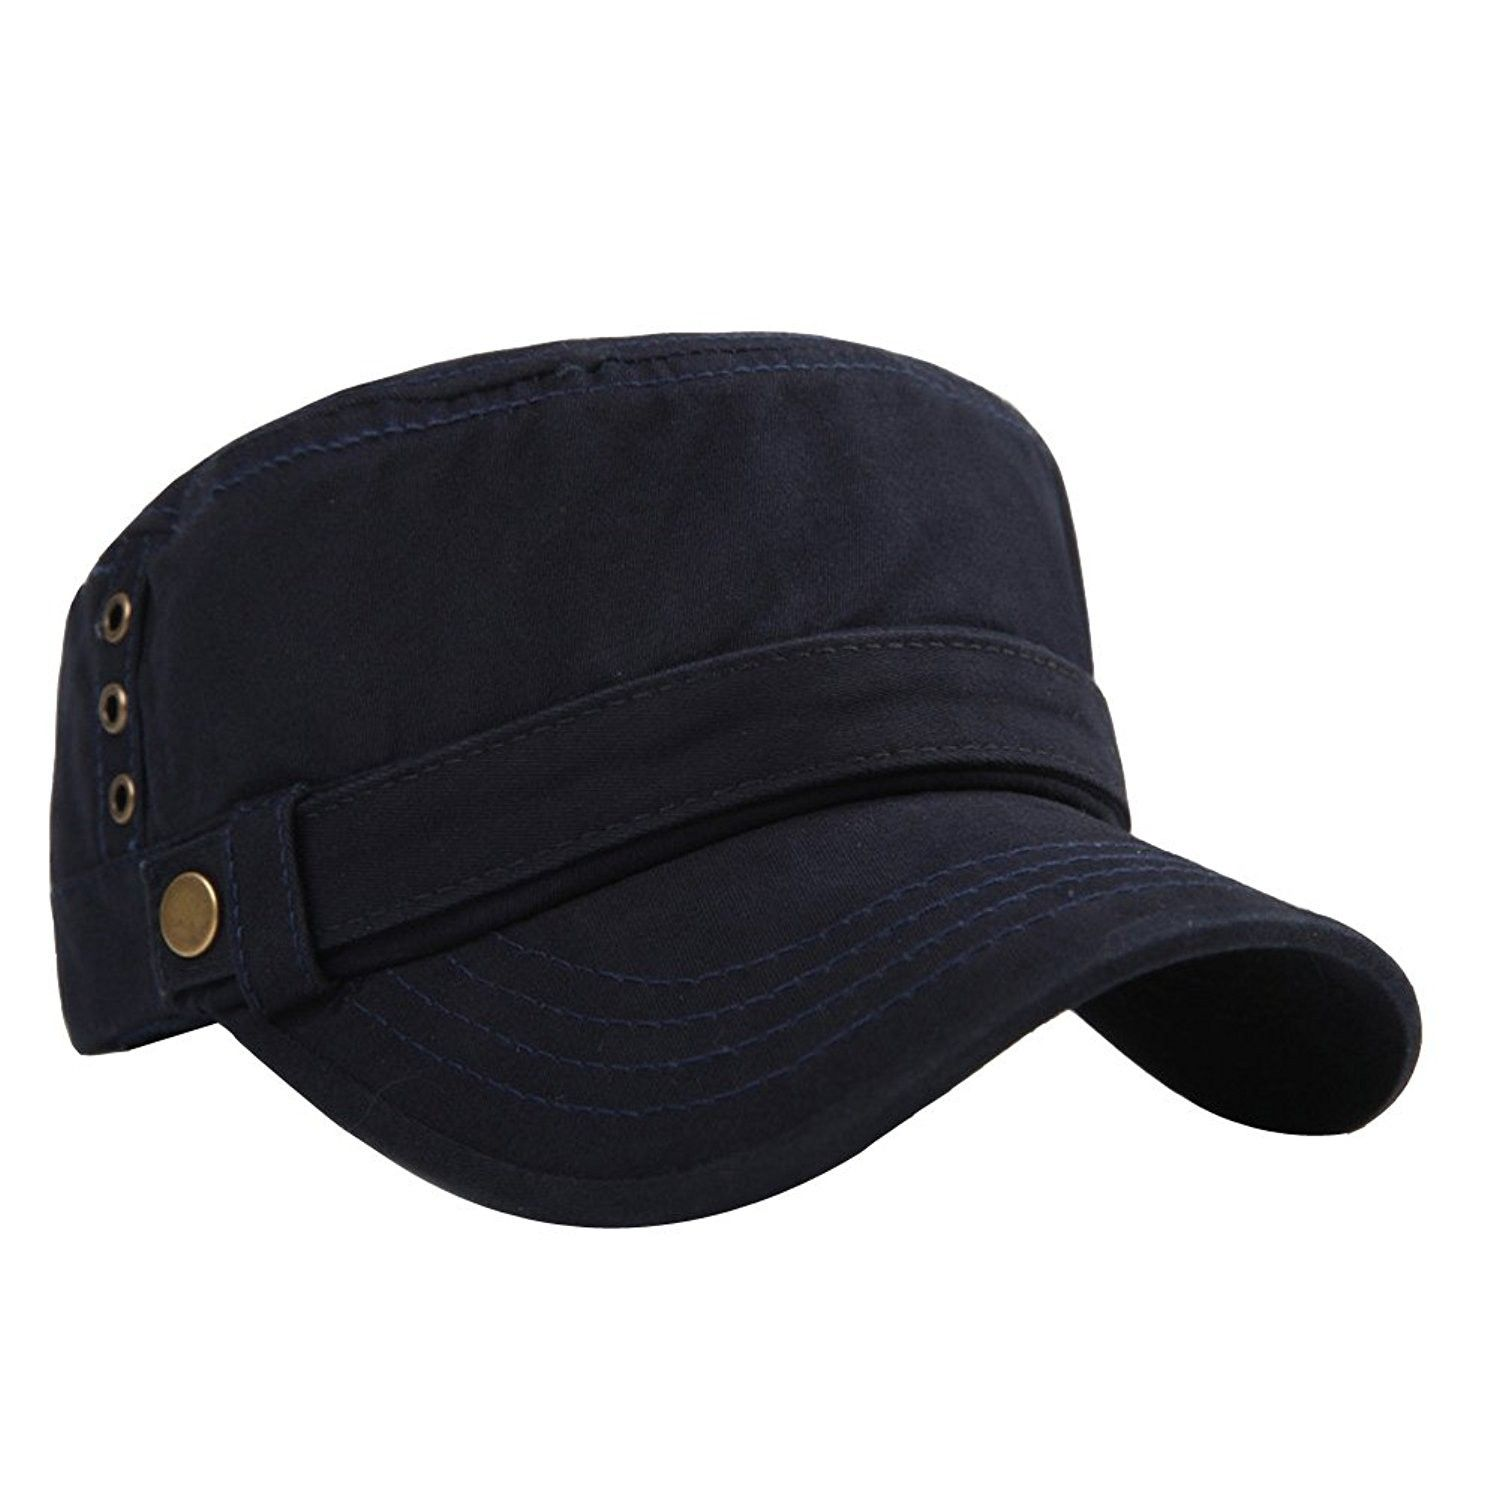 535f9770dc2 Men s Cotton Flat Top Peaked Baseball Twill Army Millitary Corps Hat Cap  Visor - Navy-